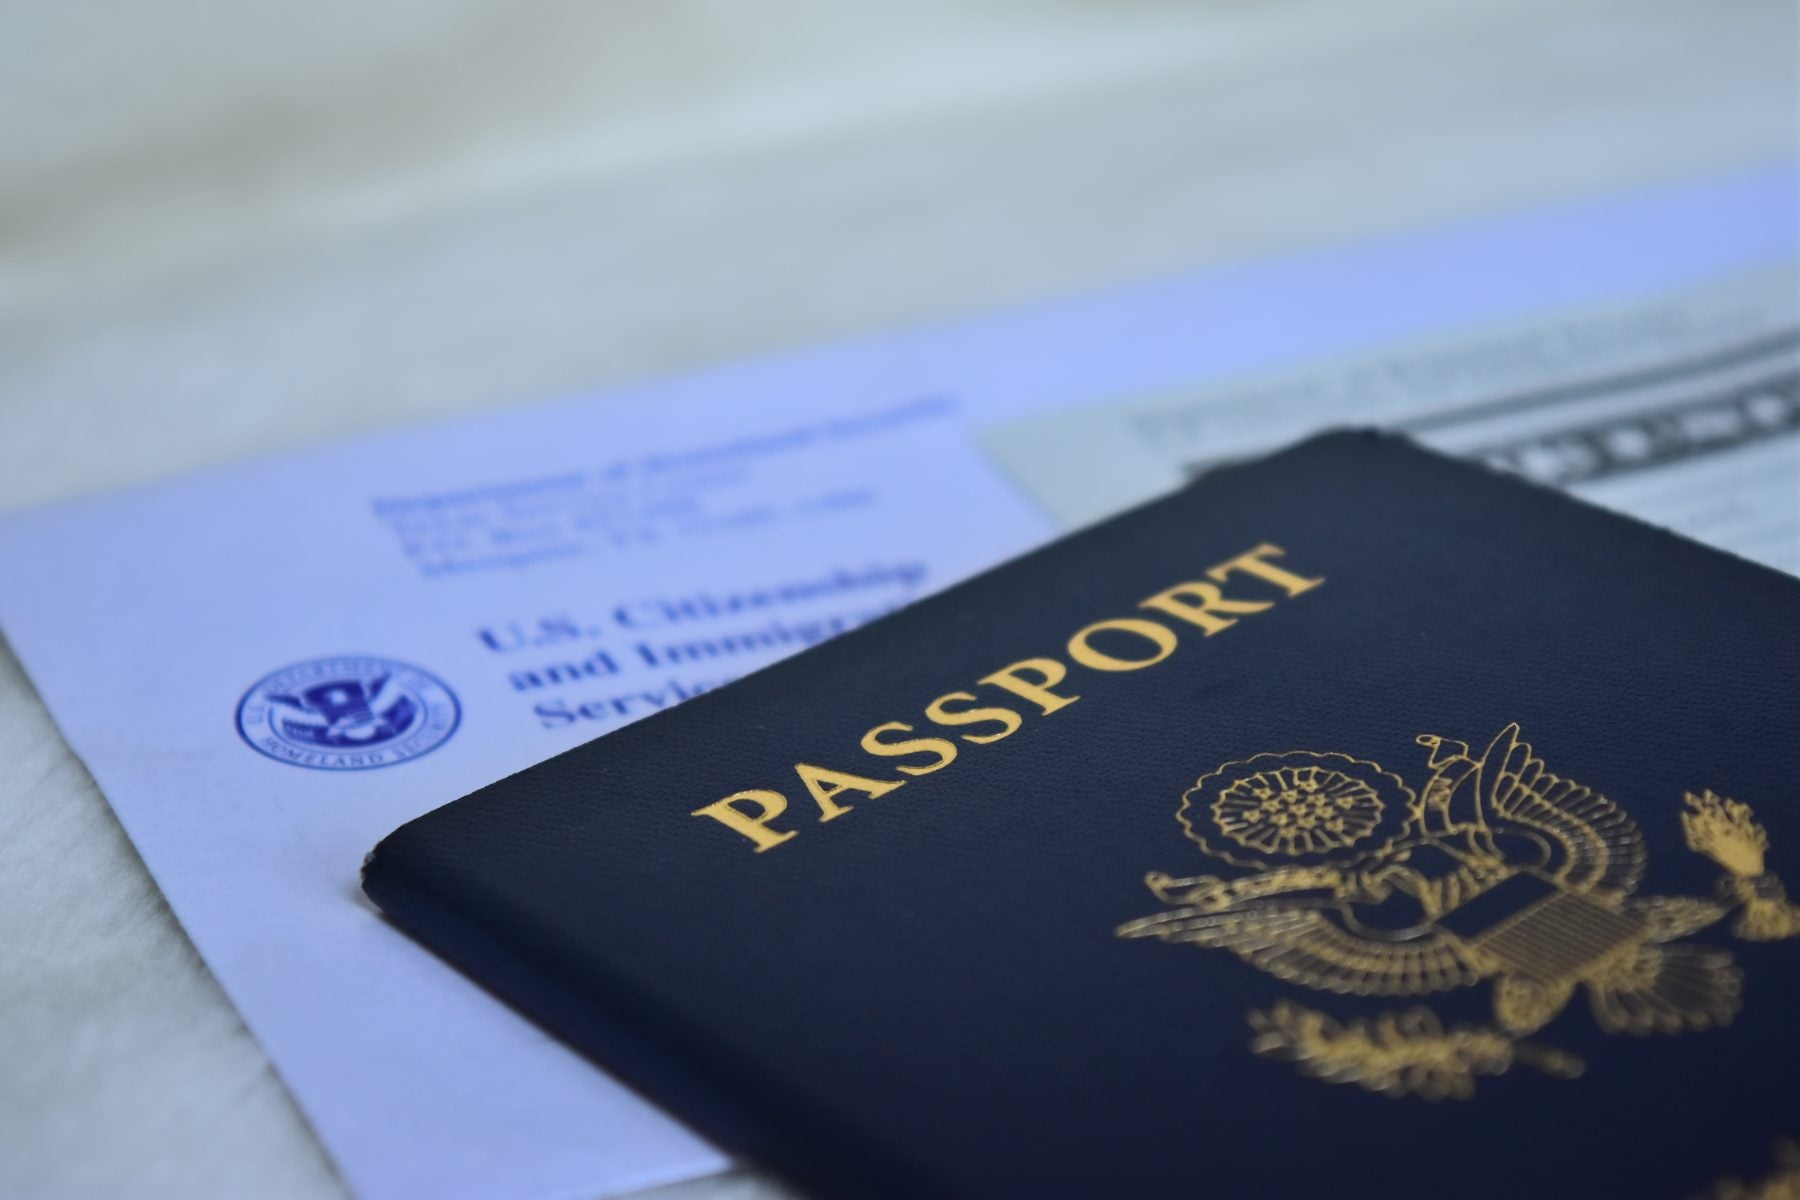 How to check passport application status